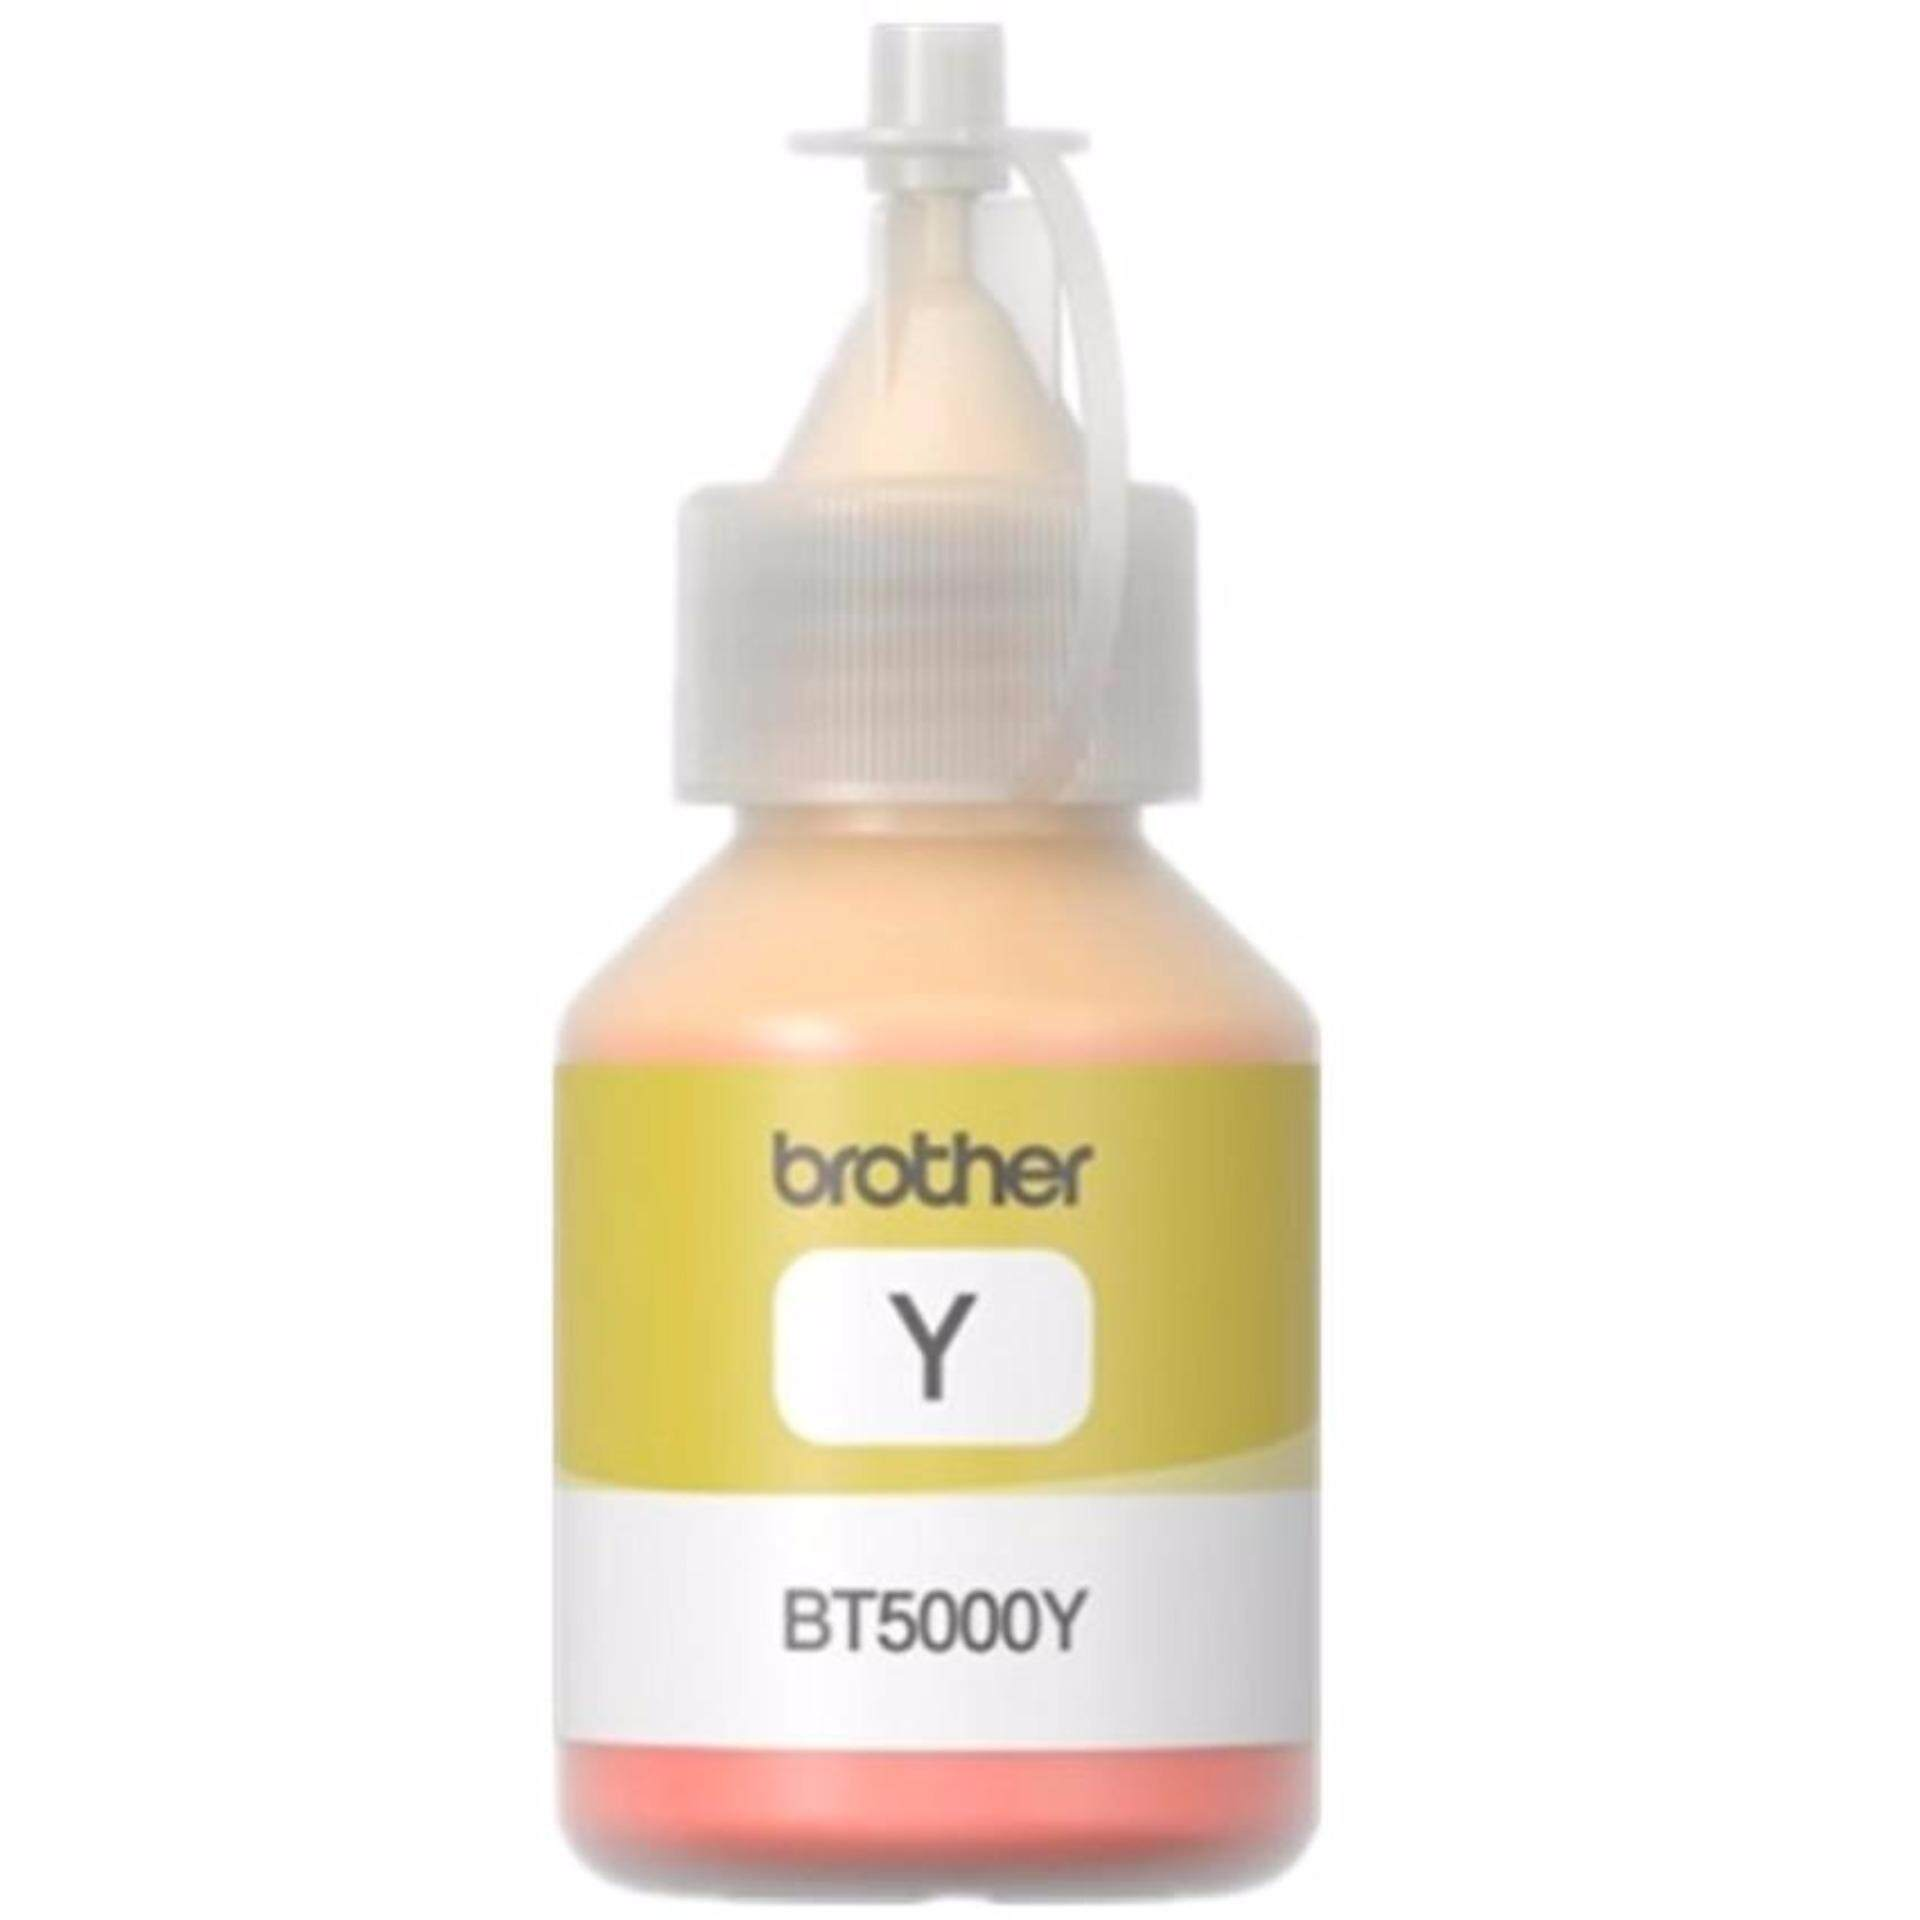 BROTHER BT5000 YELLOW ORIGINAL INK FOR PRINTER DCP-T300, DCP-T500W, DCP-T700W, MFC-T800W